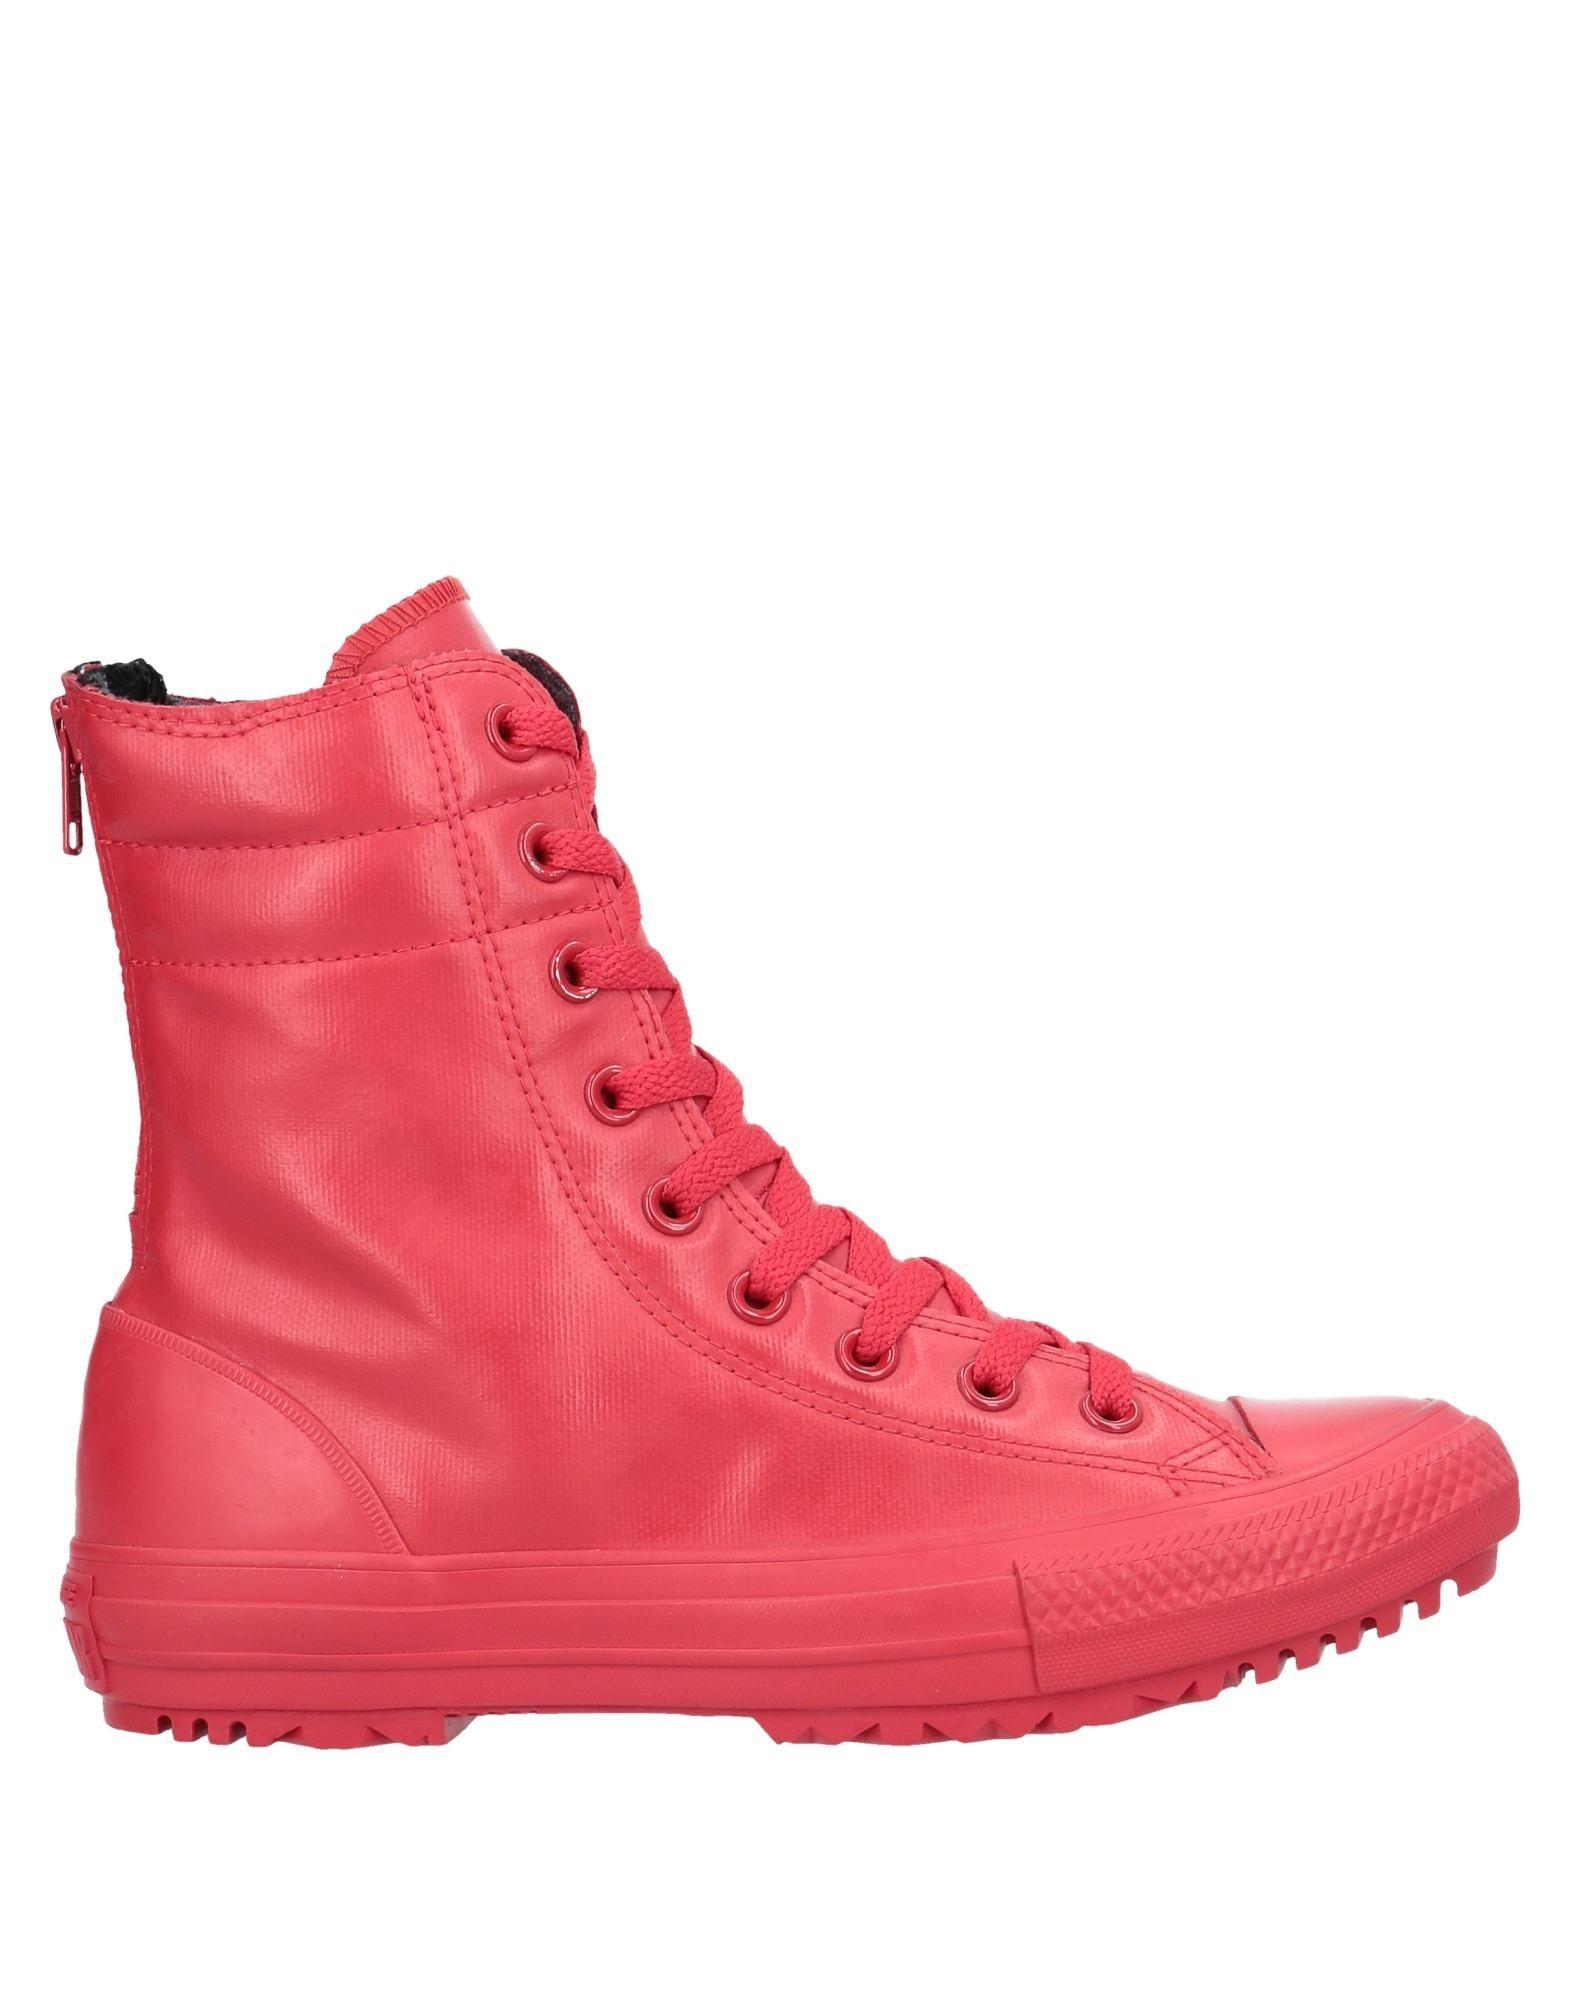 Converse High Tops Sneakers In Red Lyst